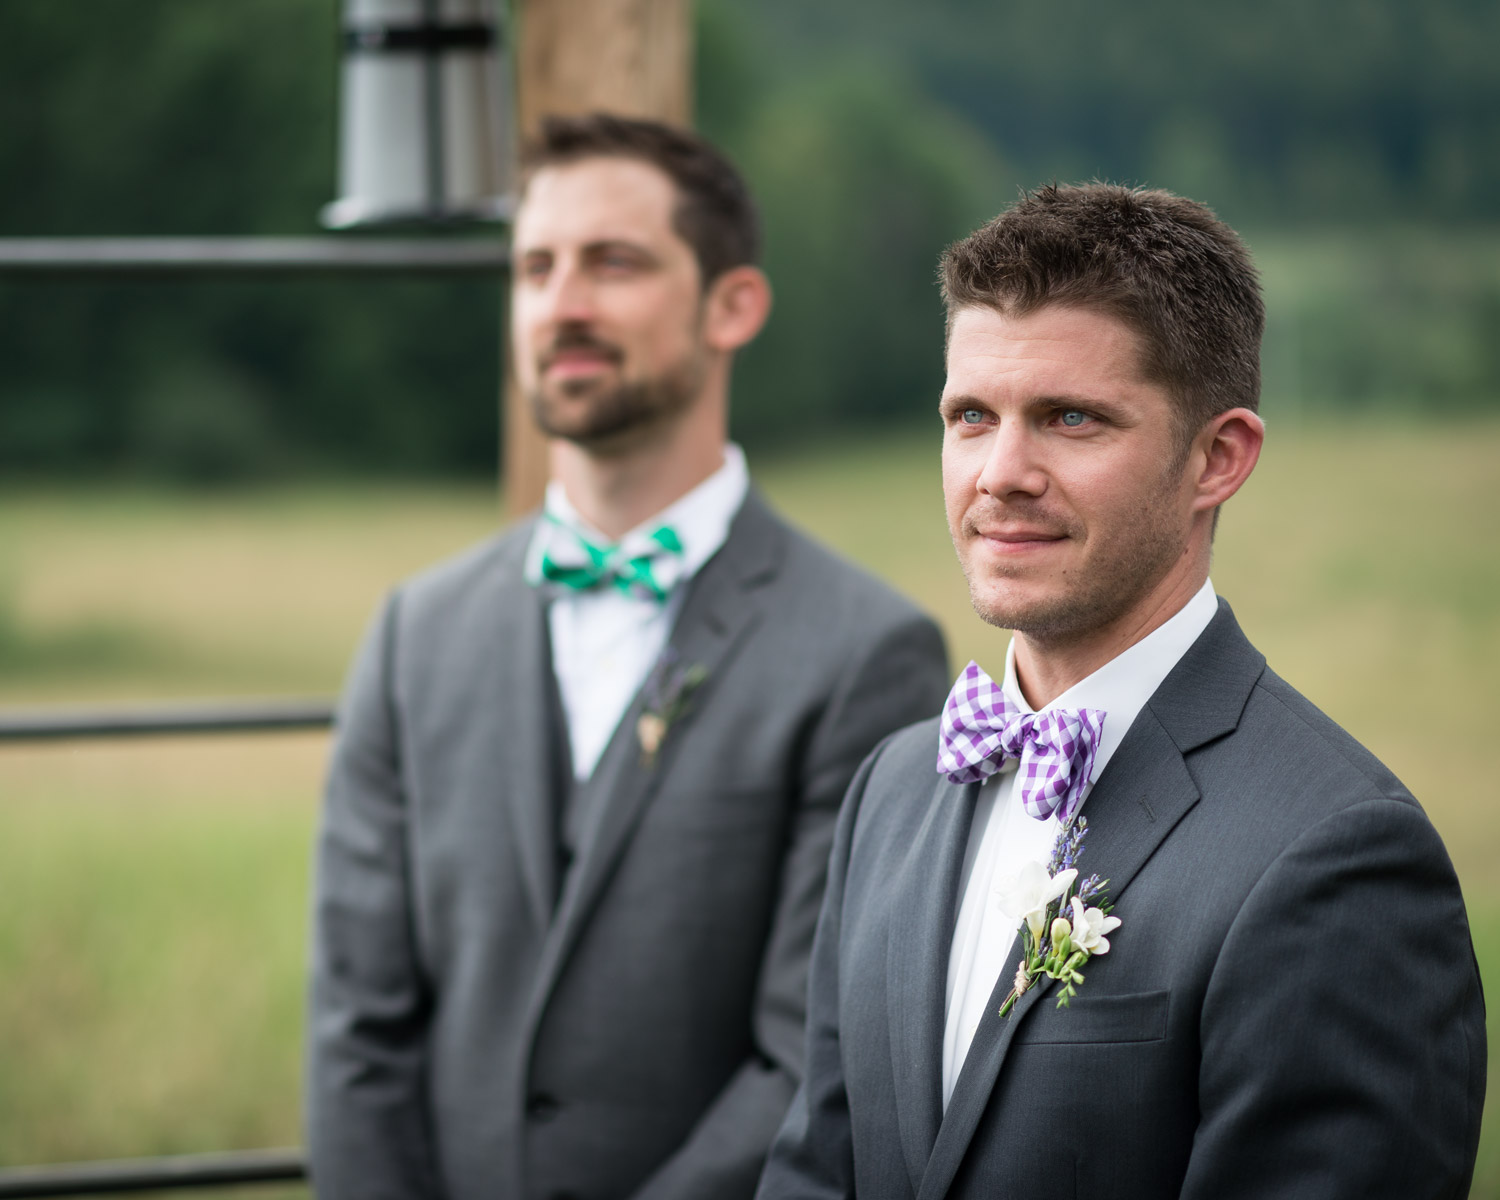 A groom watches his bride walk down the aisle in the ceremony field at Bliss Ridge by wedding photographer Stina Booth